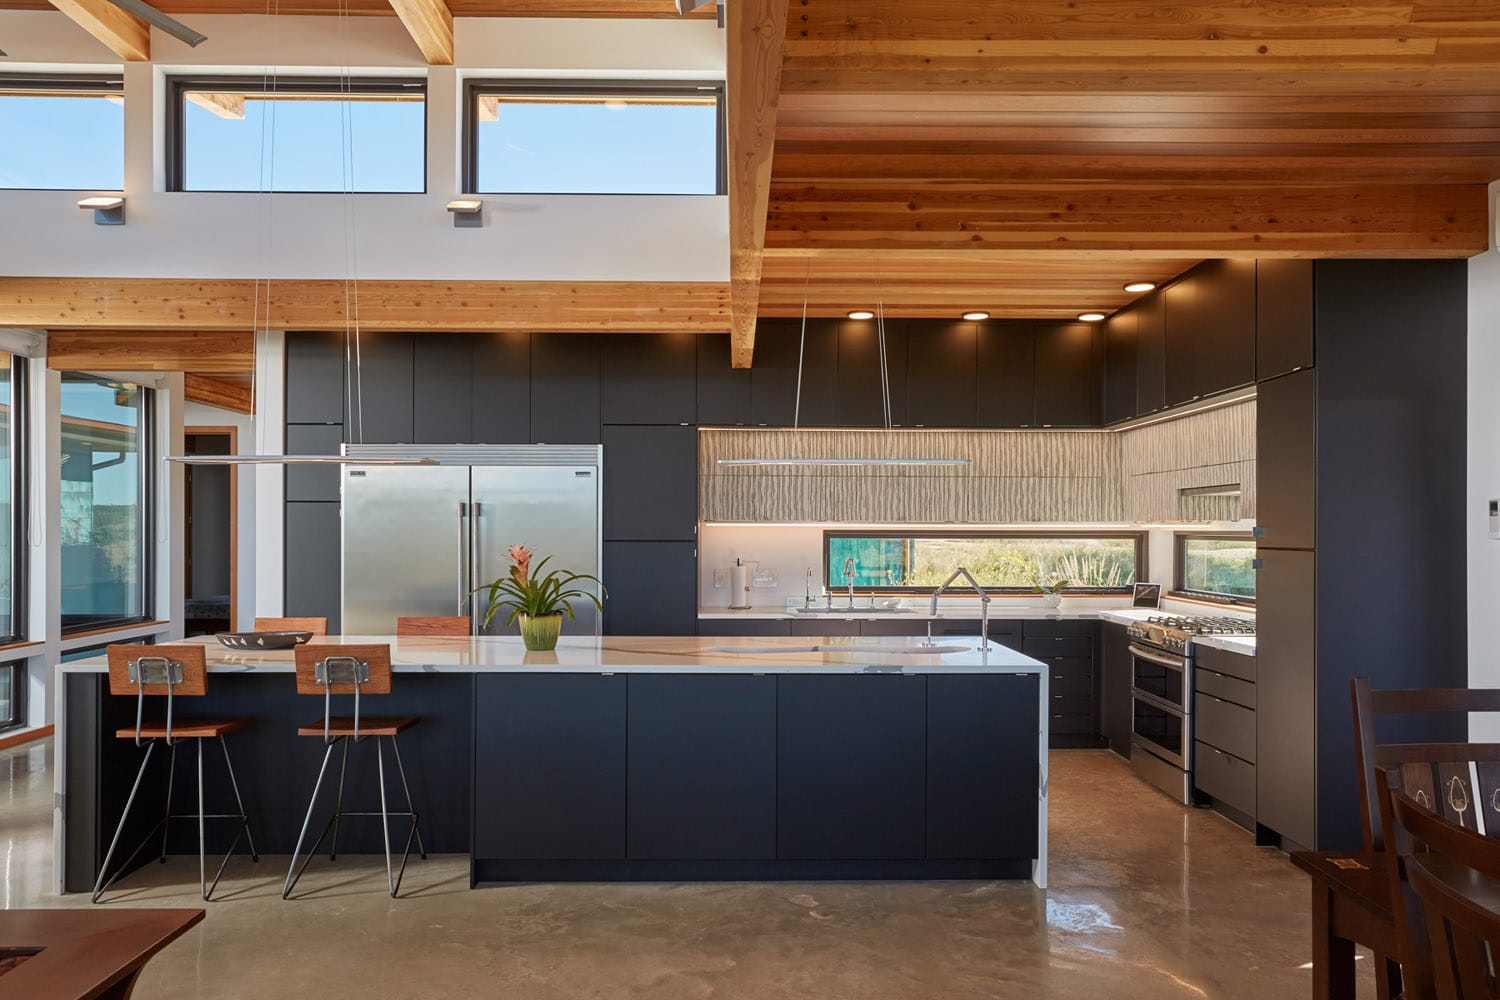 Kitchen Jeff Derebery's custom Lindal Hestia home in the Texas Hill Country, Johnson City